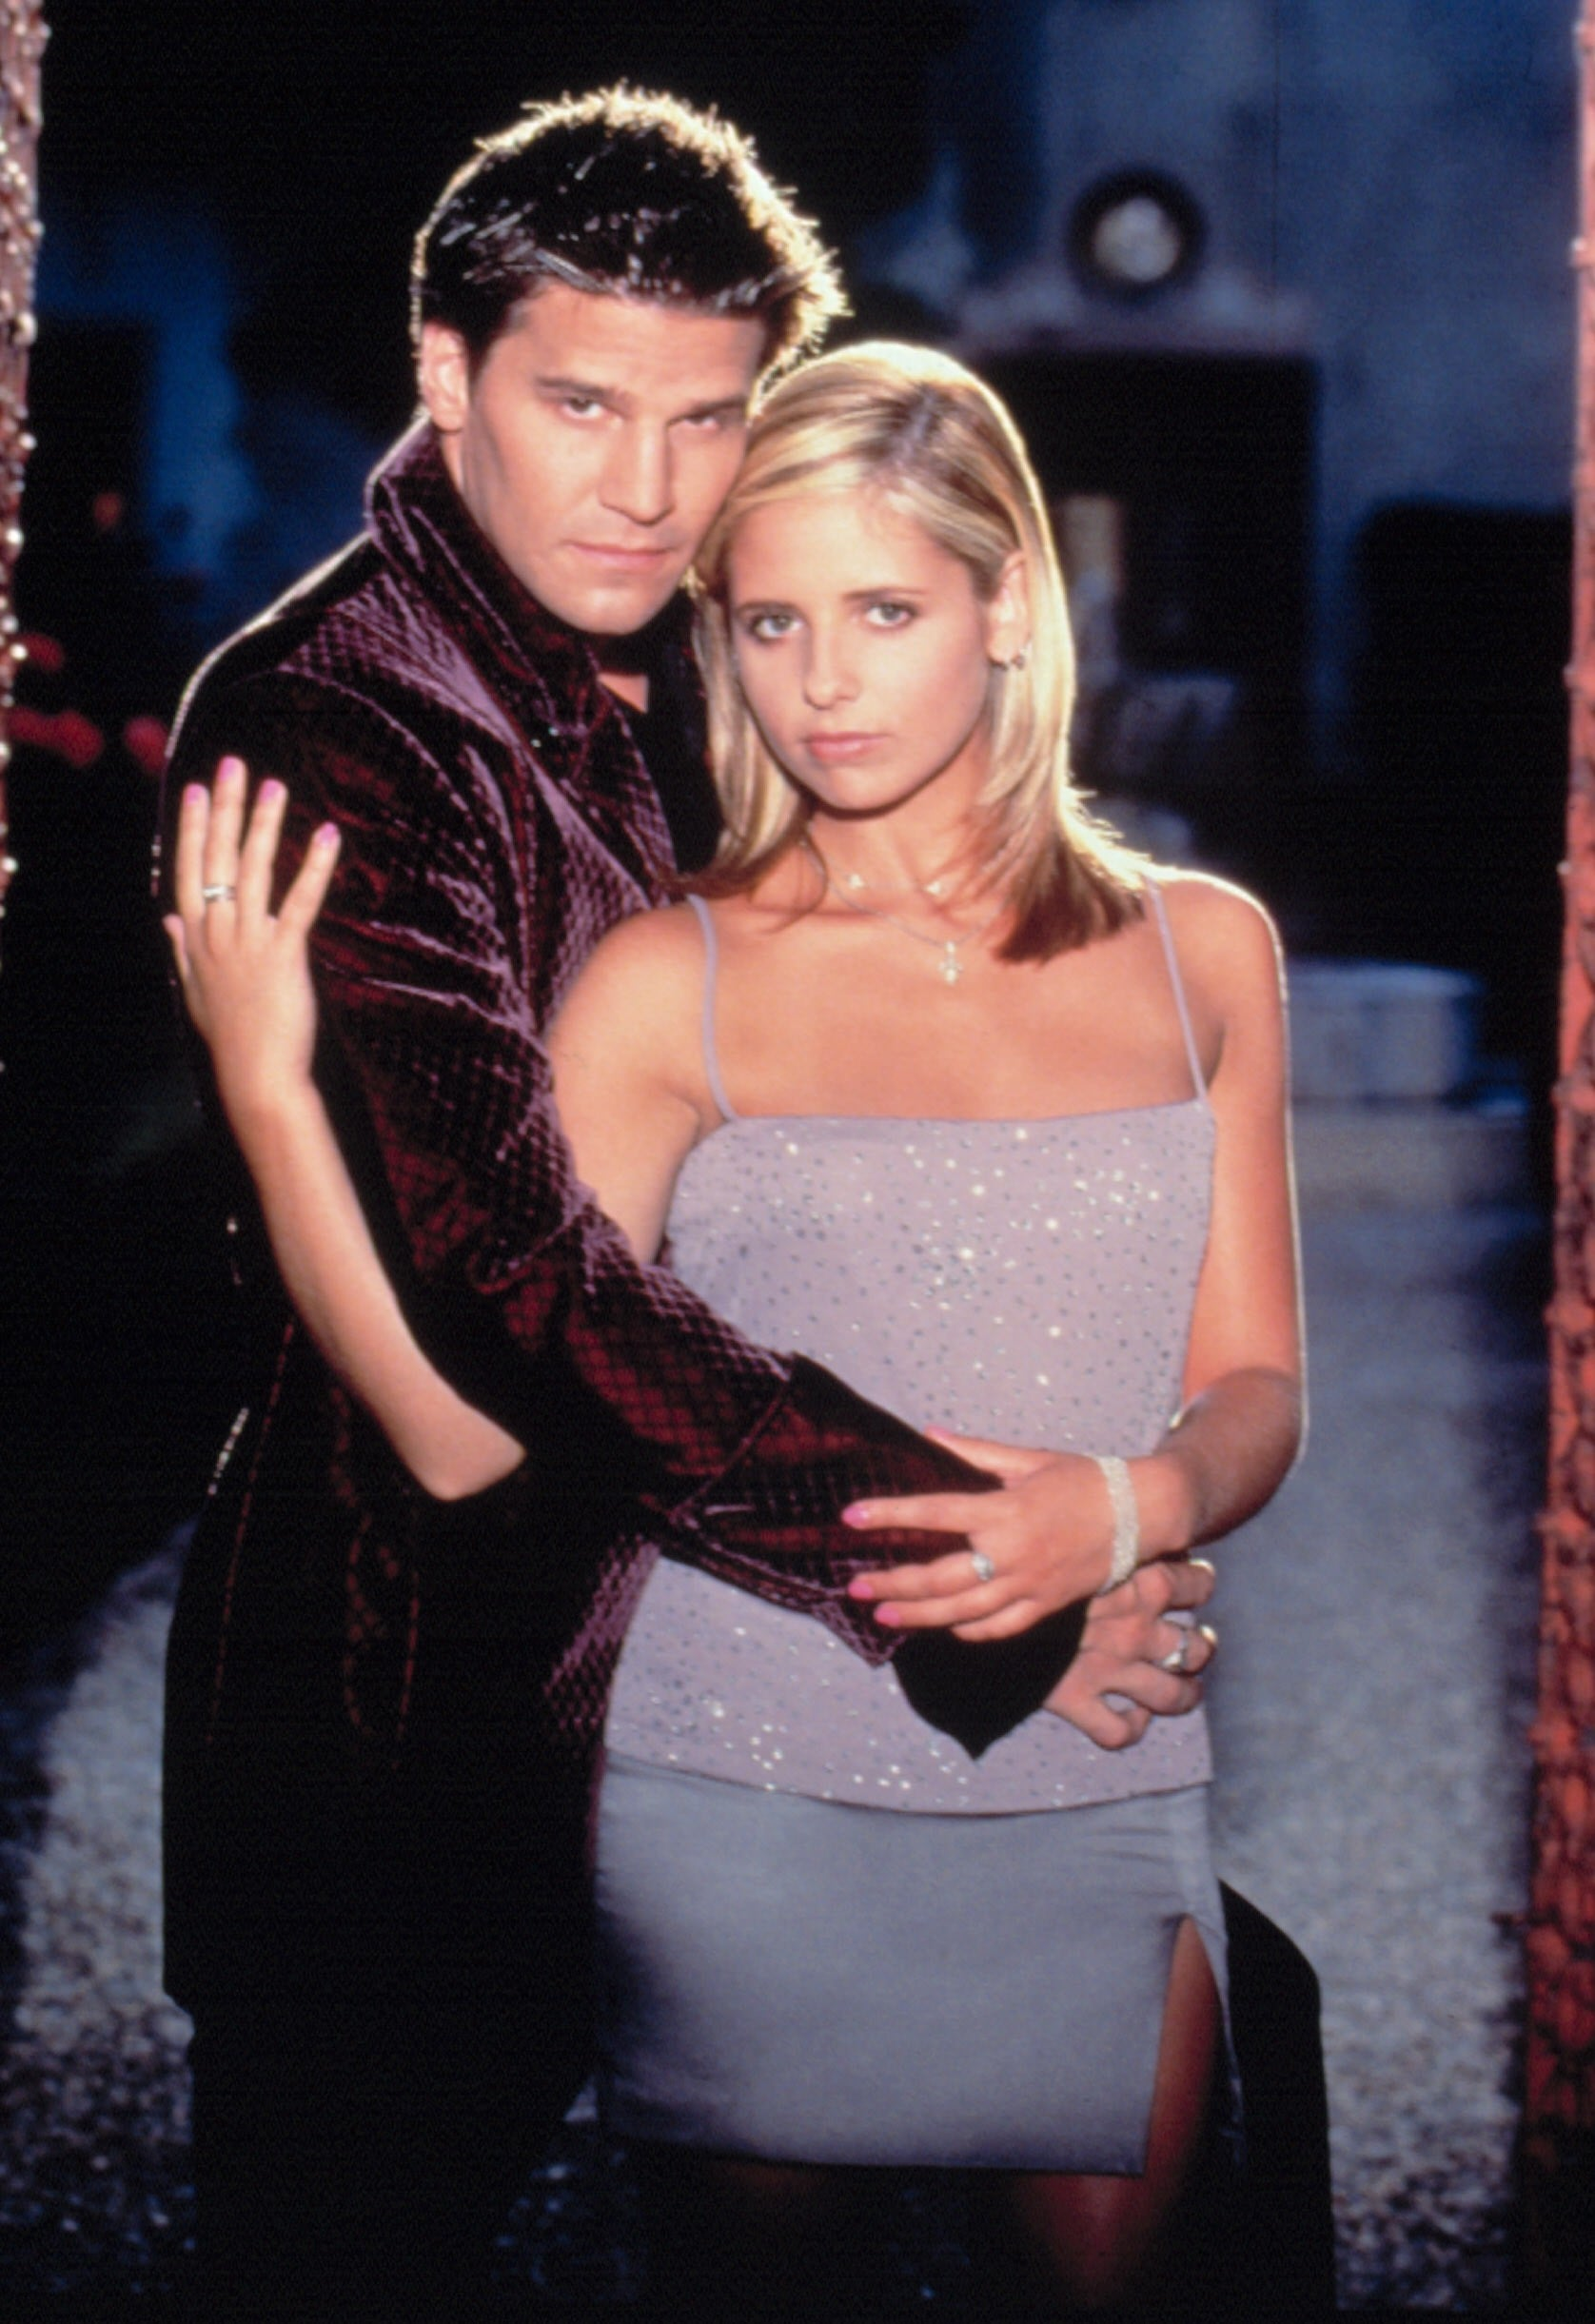 Buffy and angel hookup - Dating site satellite seriously